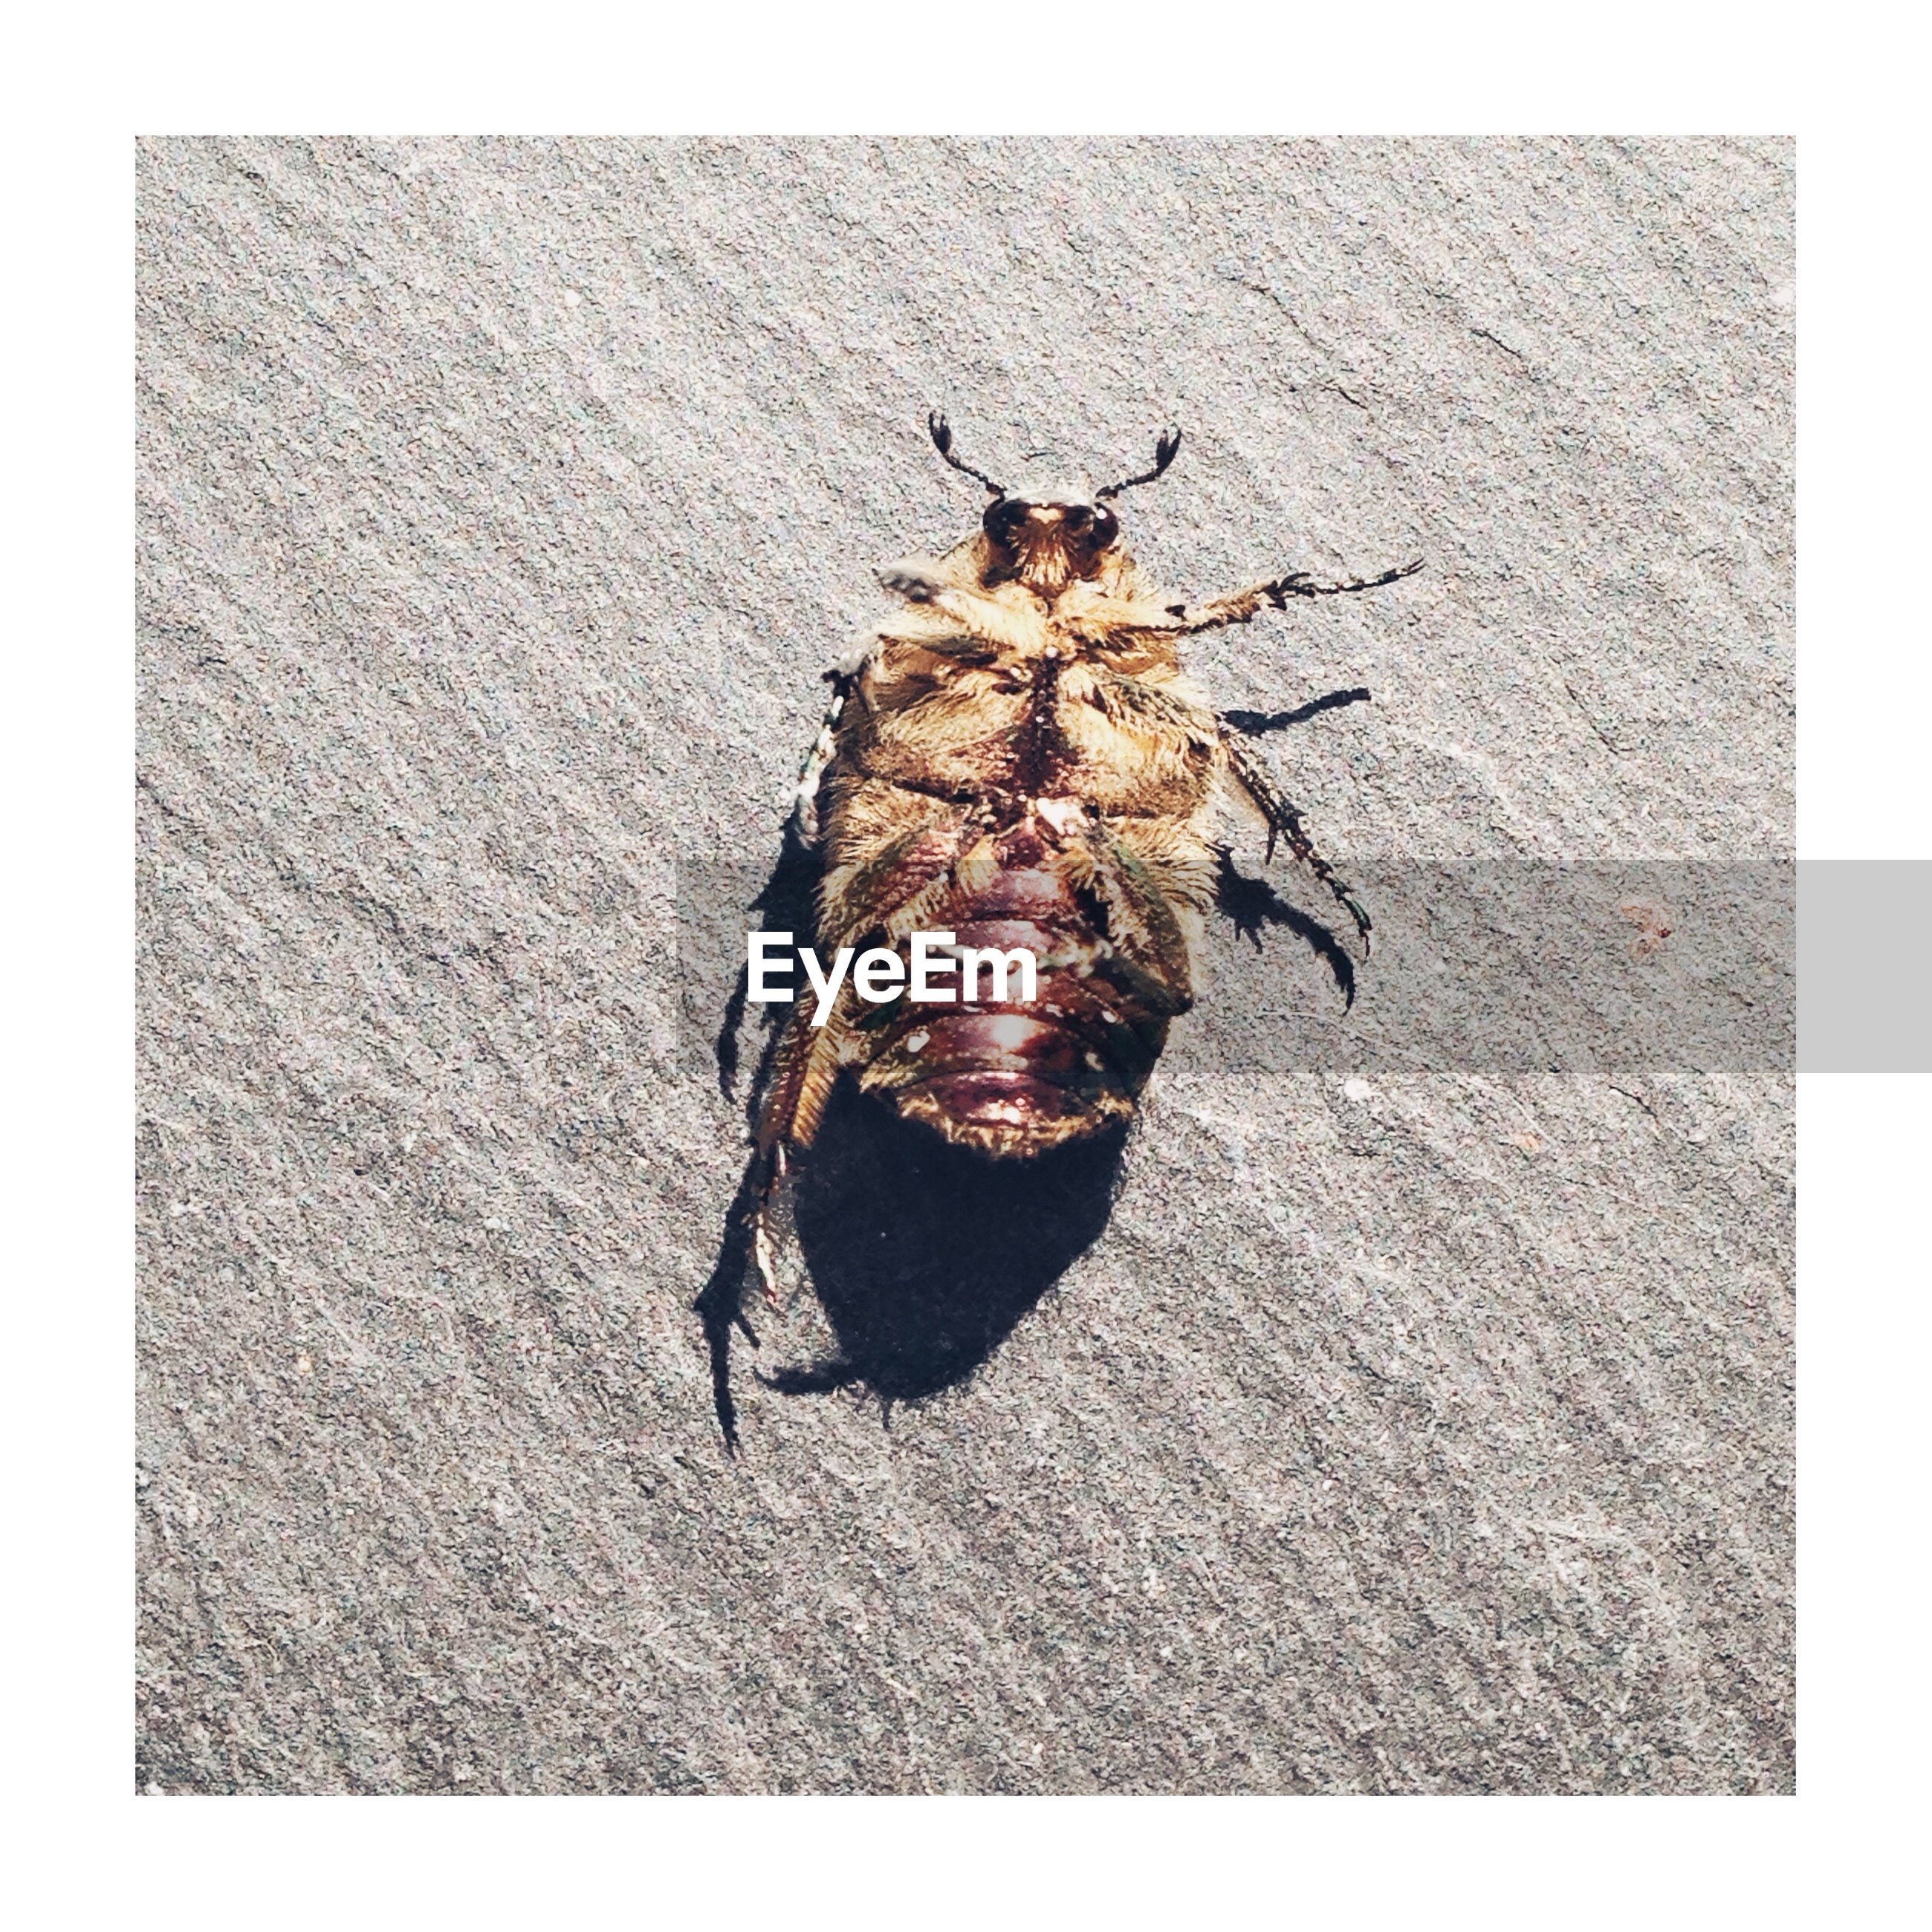 transfer print, animal themes, animal, auto post production filter, insect, animals in the wild, one animal, animal wildlife, invertebrate, close-up, no people, nature, day, directly above, outdoors, full length, high angle view, sunlight, arthropod